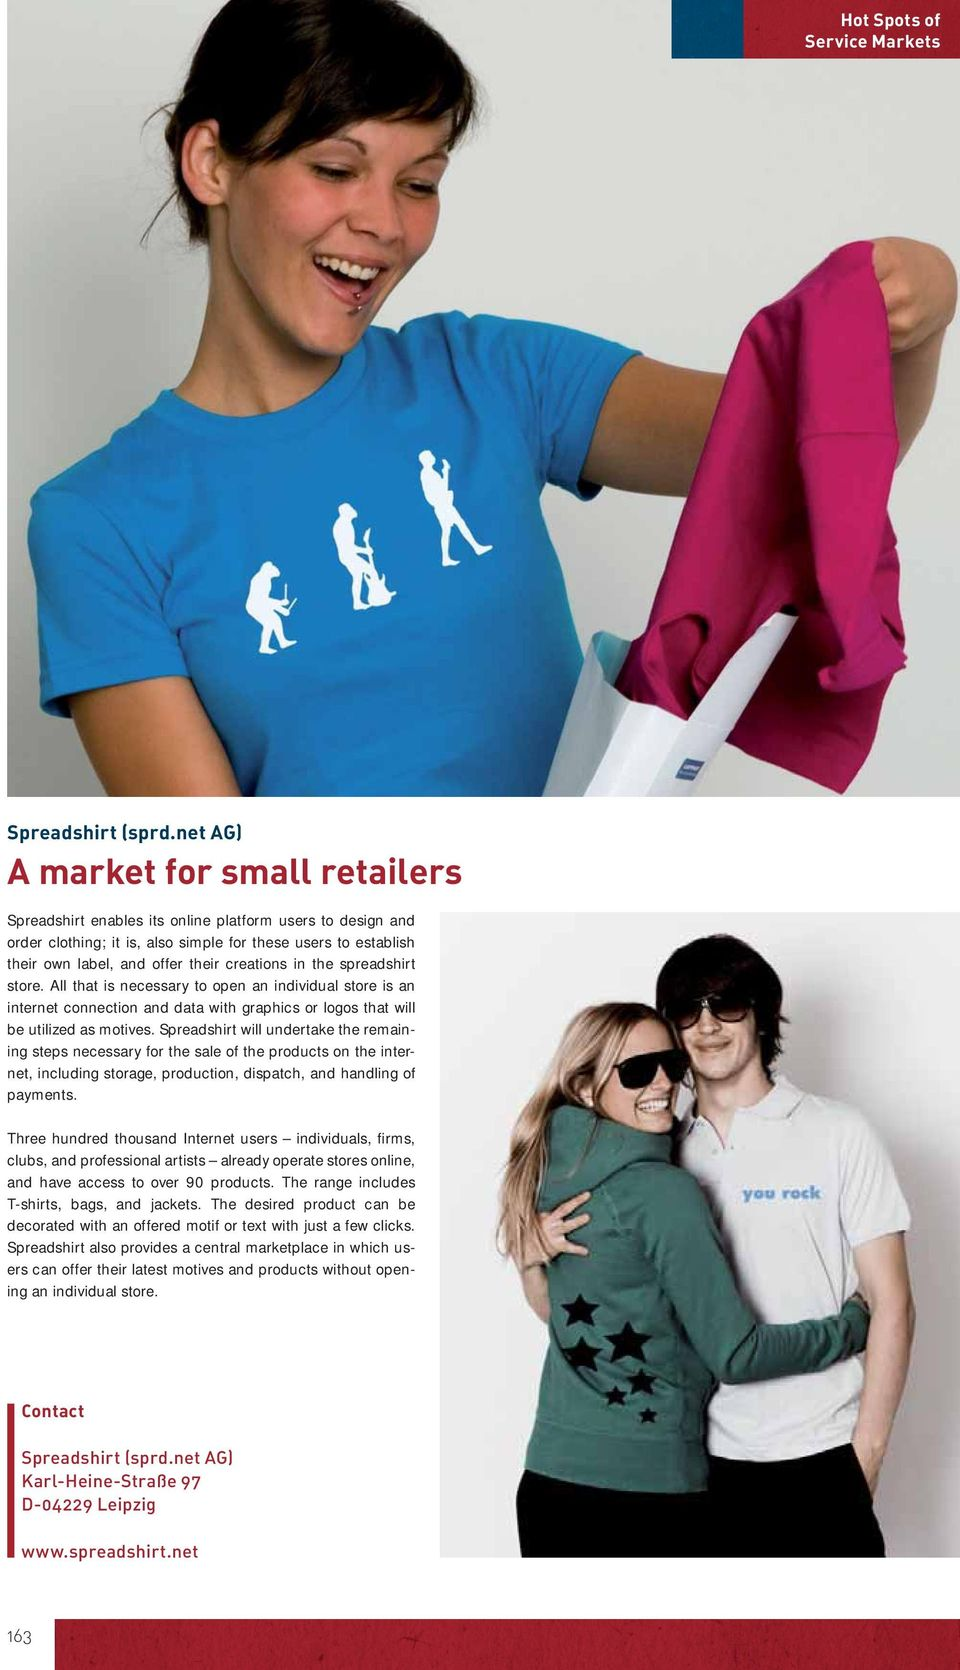 creations in the spreadshirt store. All that is necessary to open an individual store is an internet connection and data with graphics or logos that will be utilized as motives.